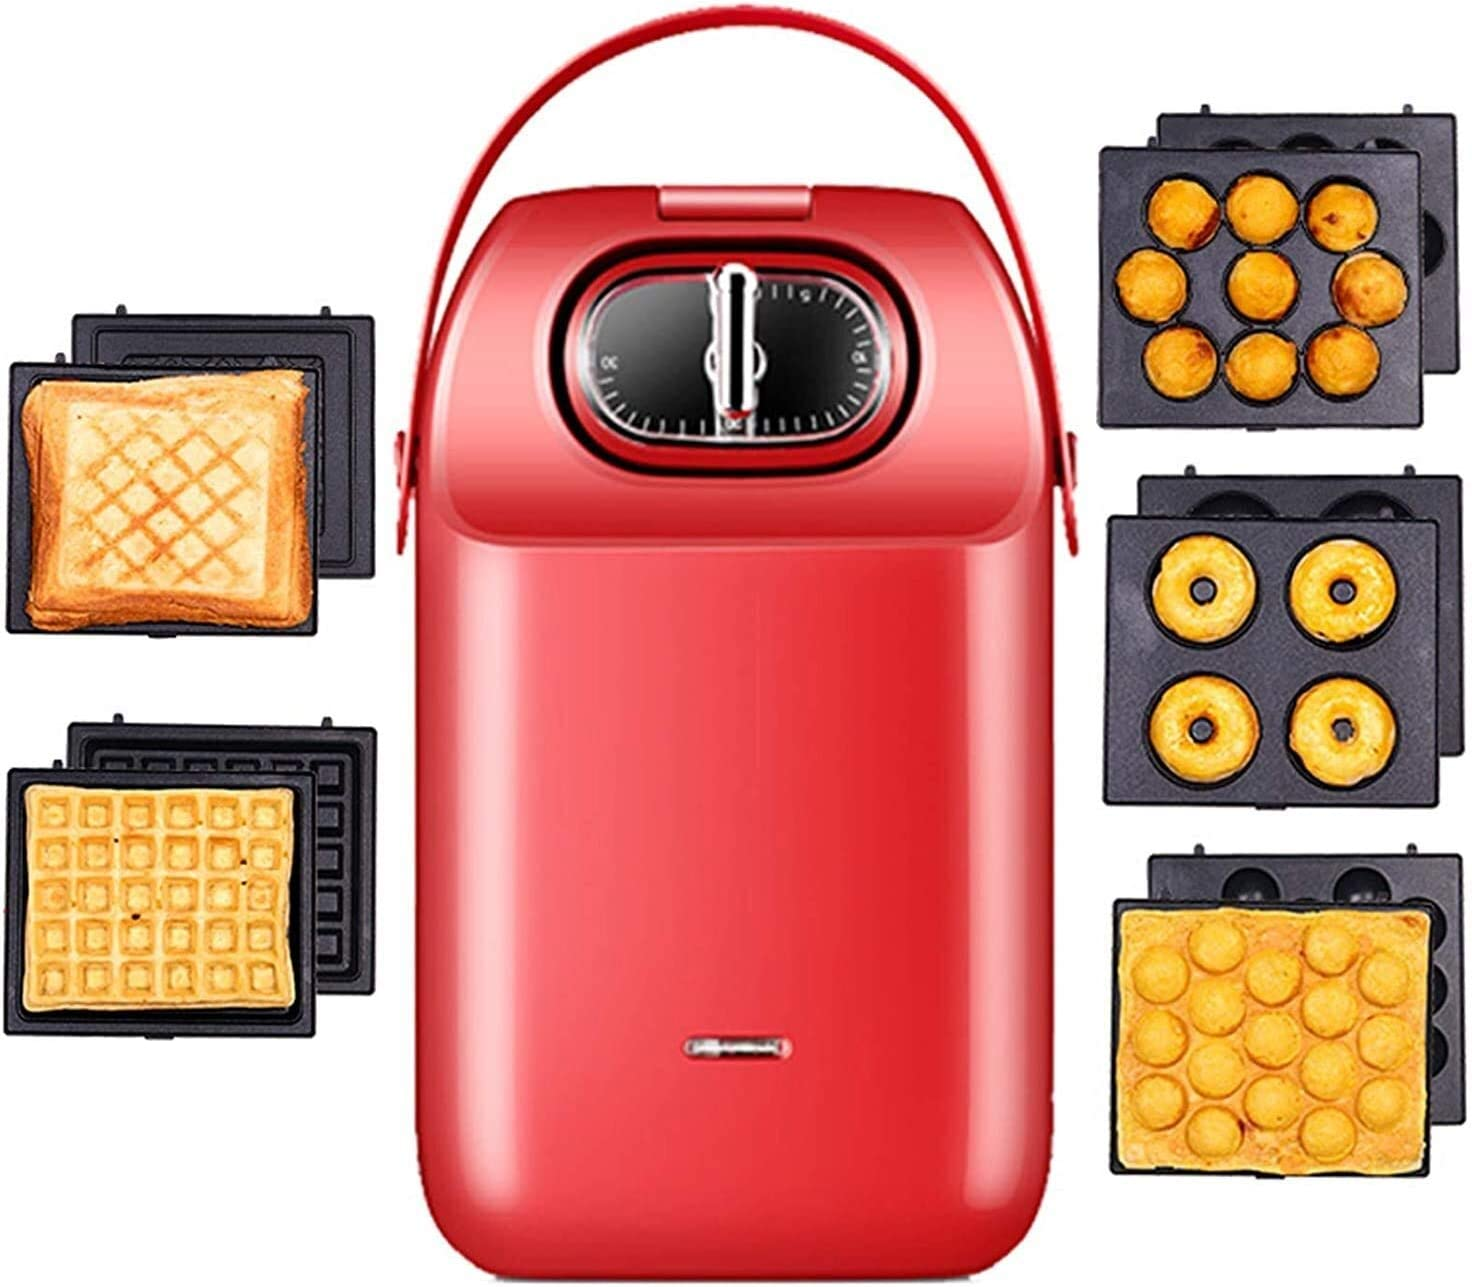 sandwich toaster Sandwich Toaster, Donut Maker Machine, Waffle Maker, Panini Press Grill, 4 in 1 Multi-Function Home Heating Light Food Machine, Double Layer Non-Stick Flat Bread Toaster,Red